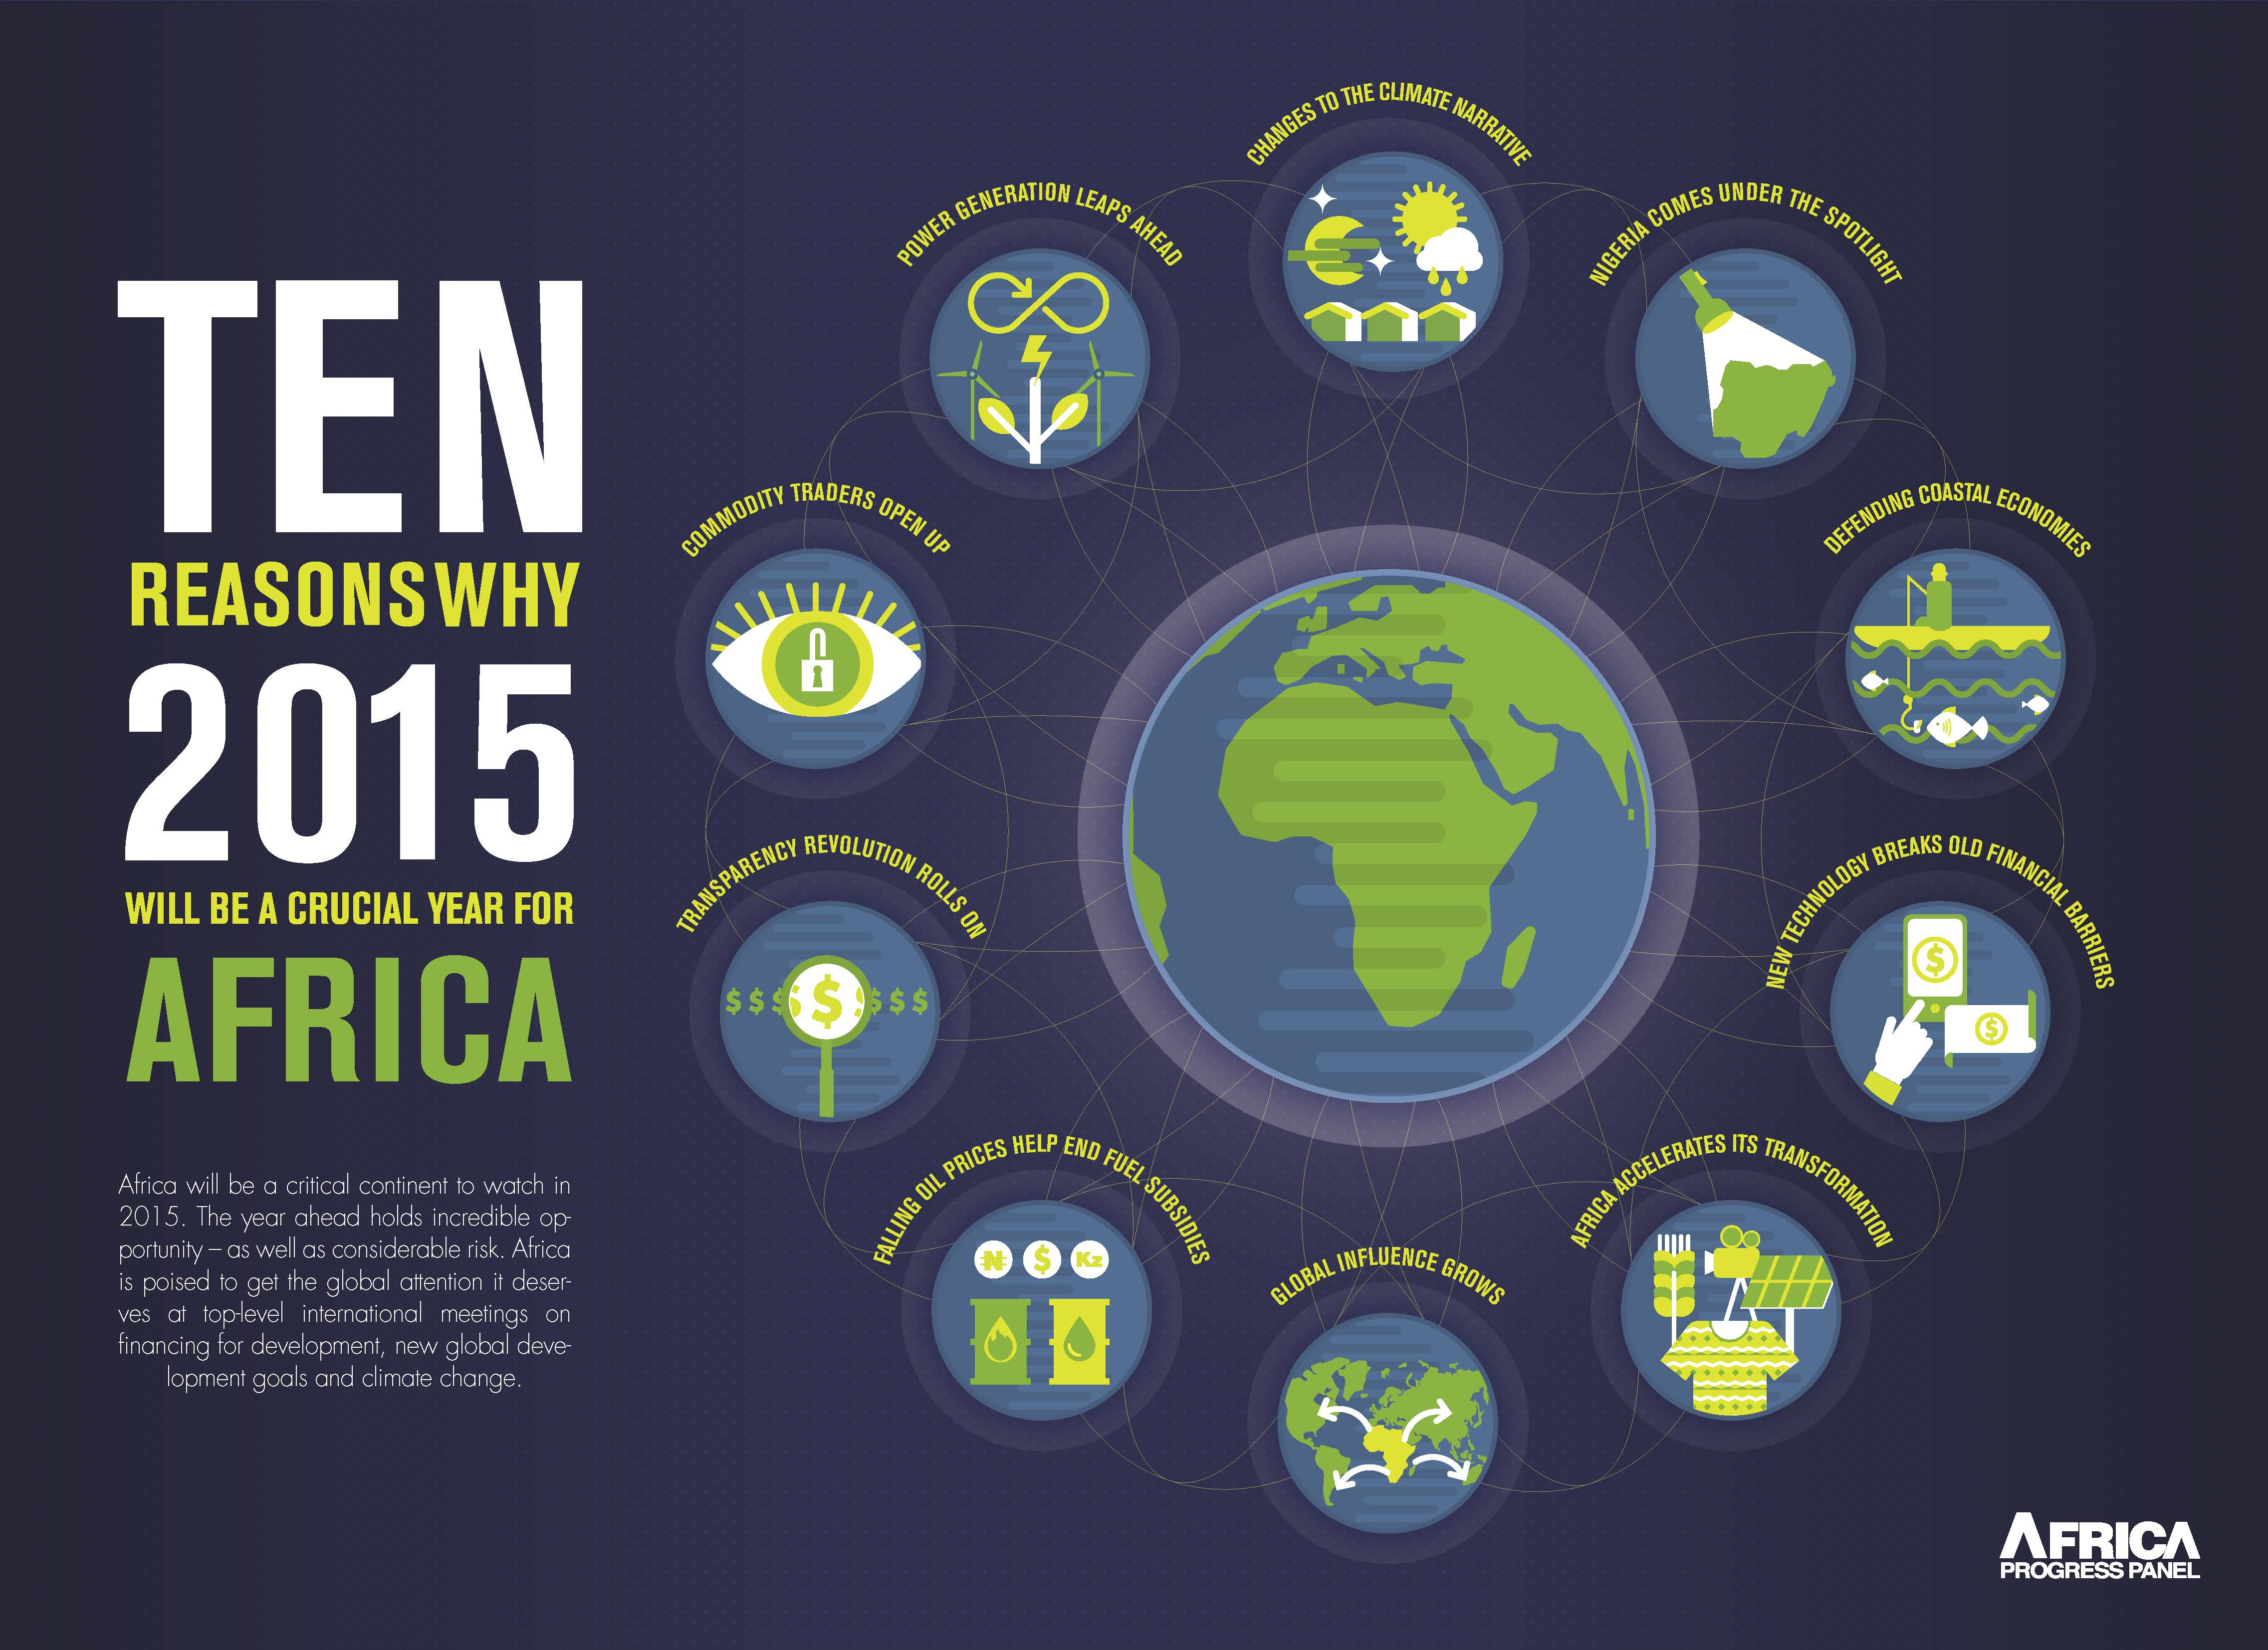 Ten reasons why we think 2015 will be a crucial year for Africa